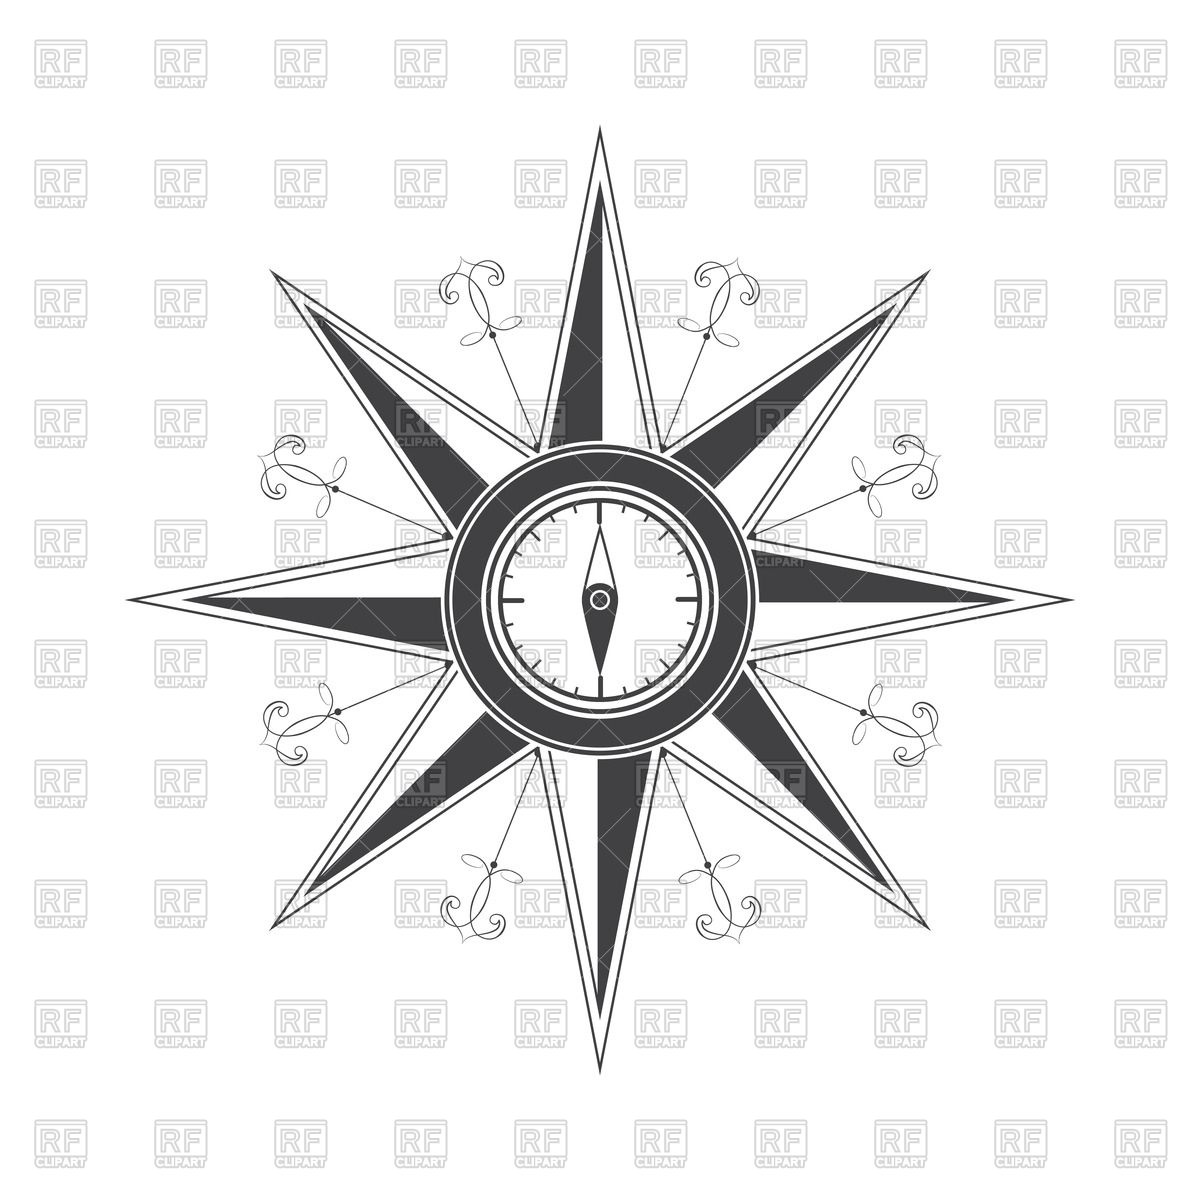 1200x1200 Simple Compass Rose (Wind Rose) Vector Image Vector Artwork Of